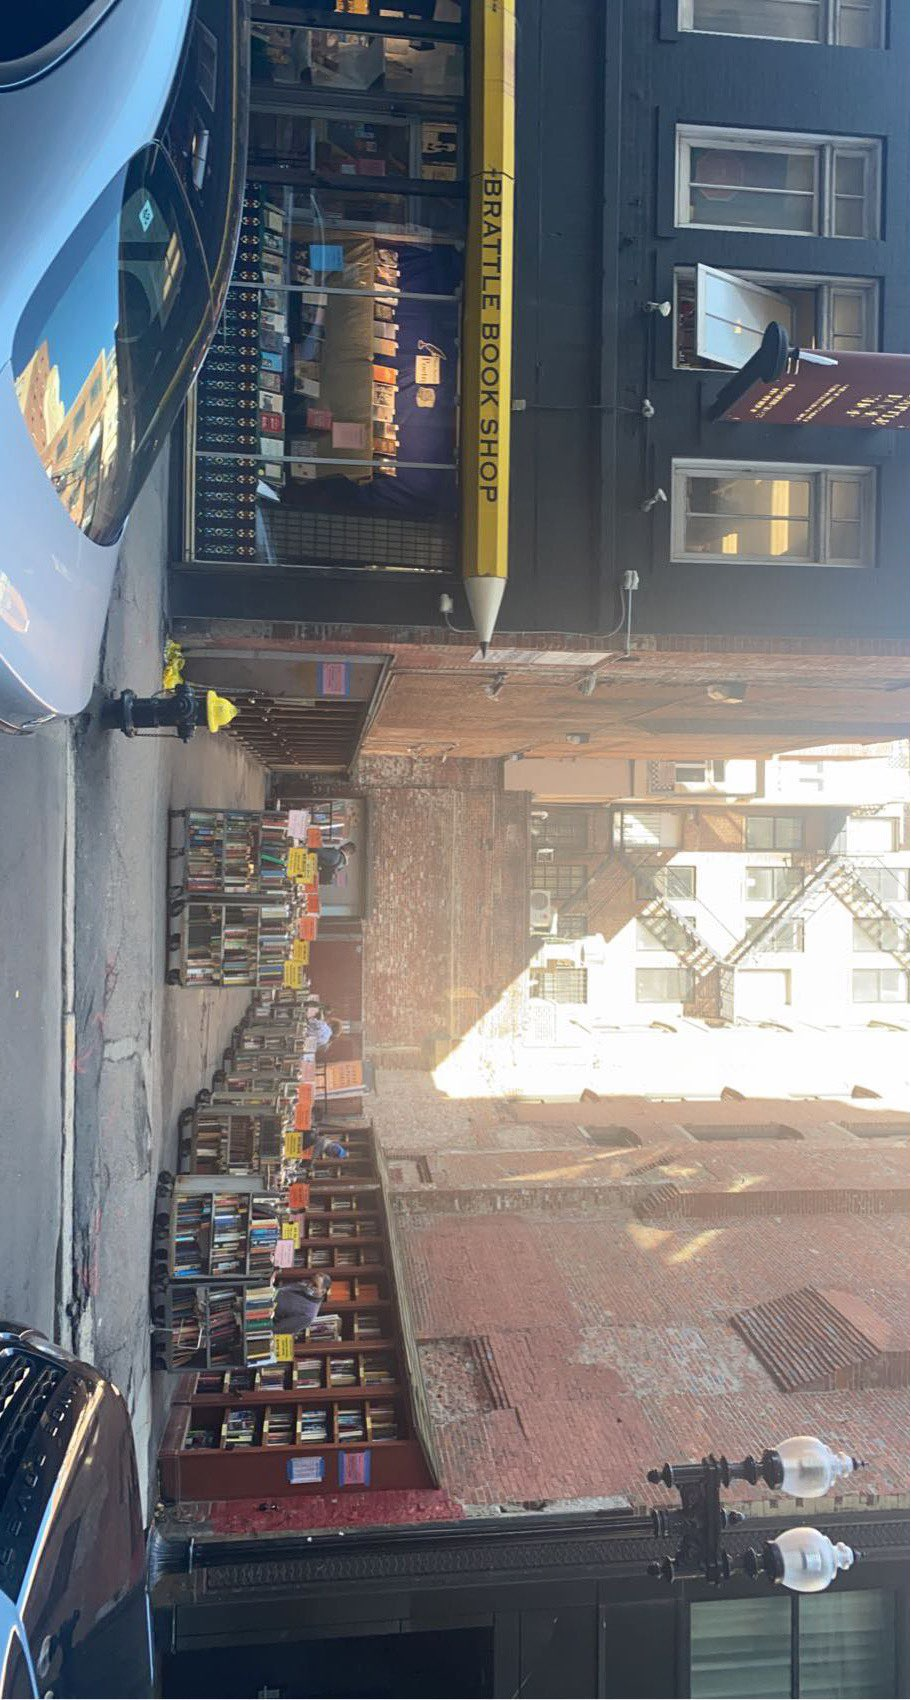 The storefront of Brattle Book Shop and its outdoor space.